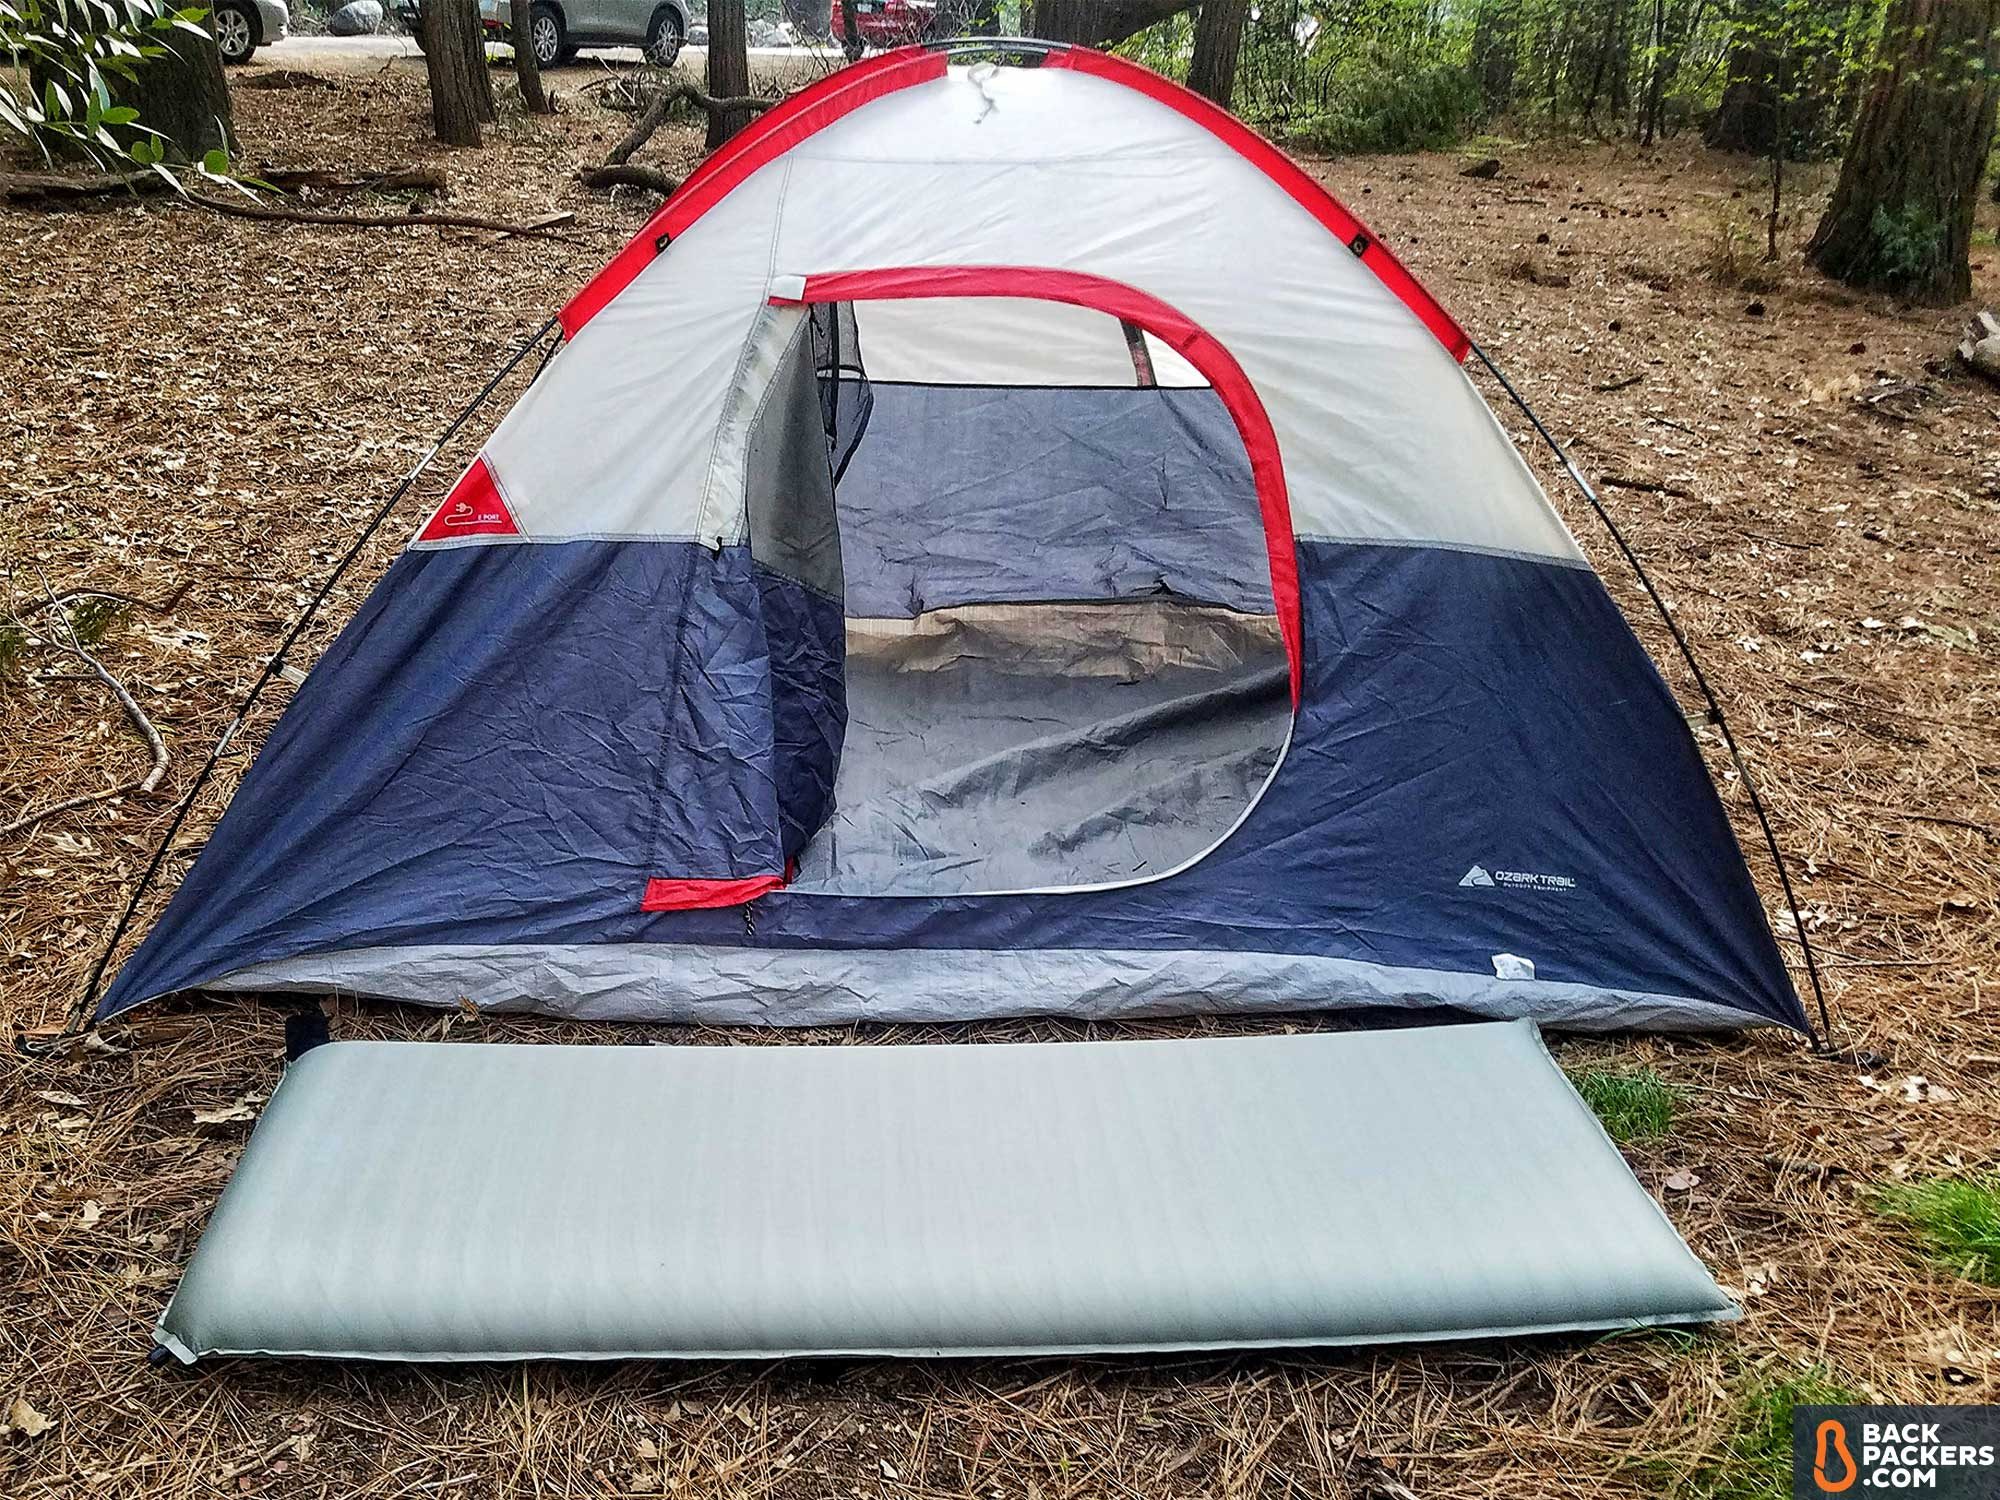 rei-c&-bed-3.5-review-inflated-outside-tent & REI Camp Bed 3.5 Review | Sleeping Pad Review | Backpackers.com